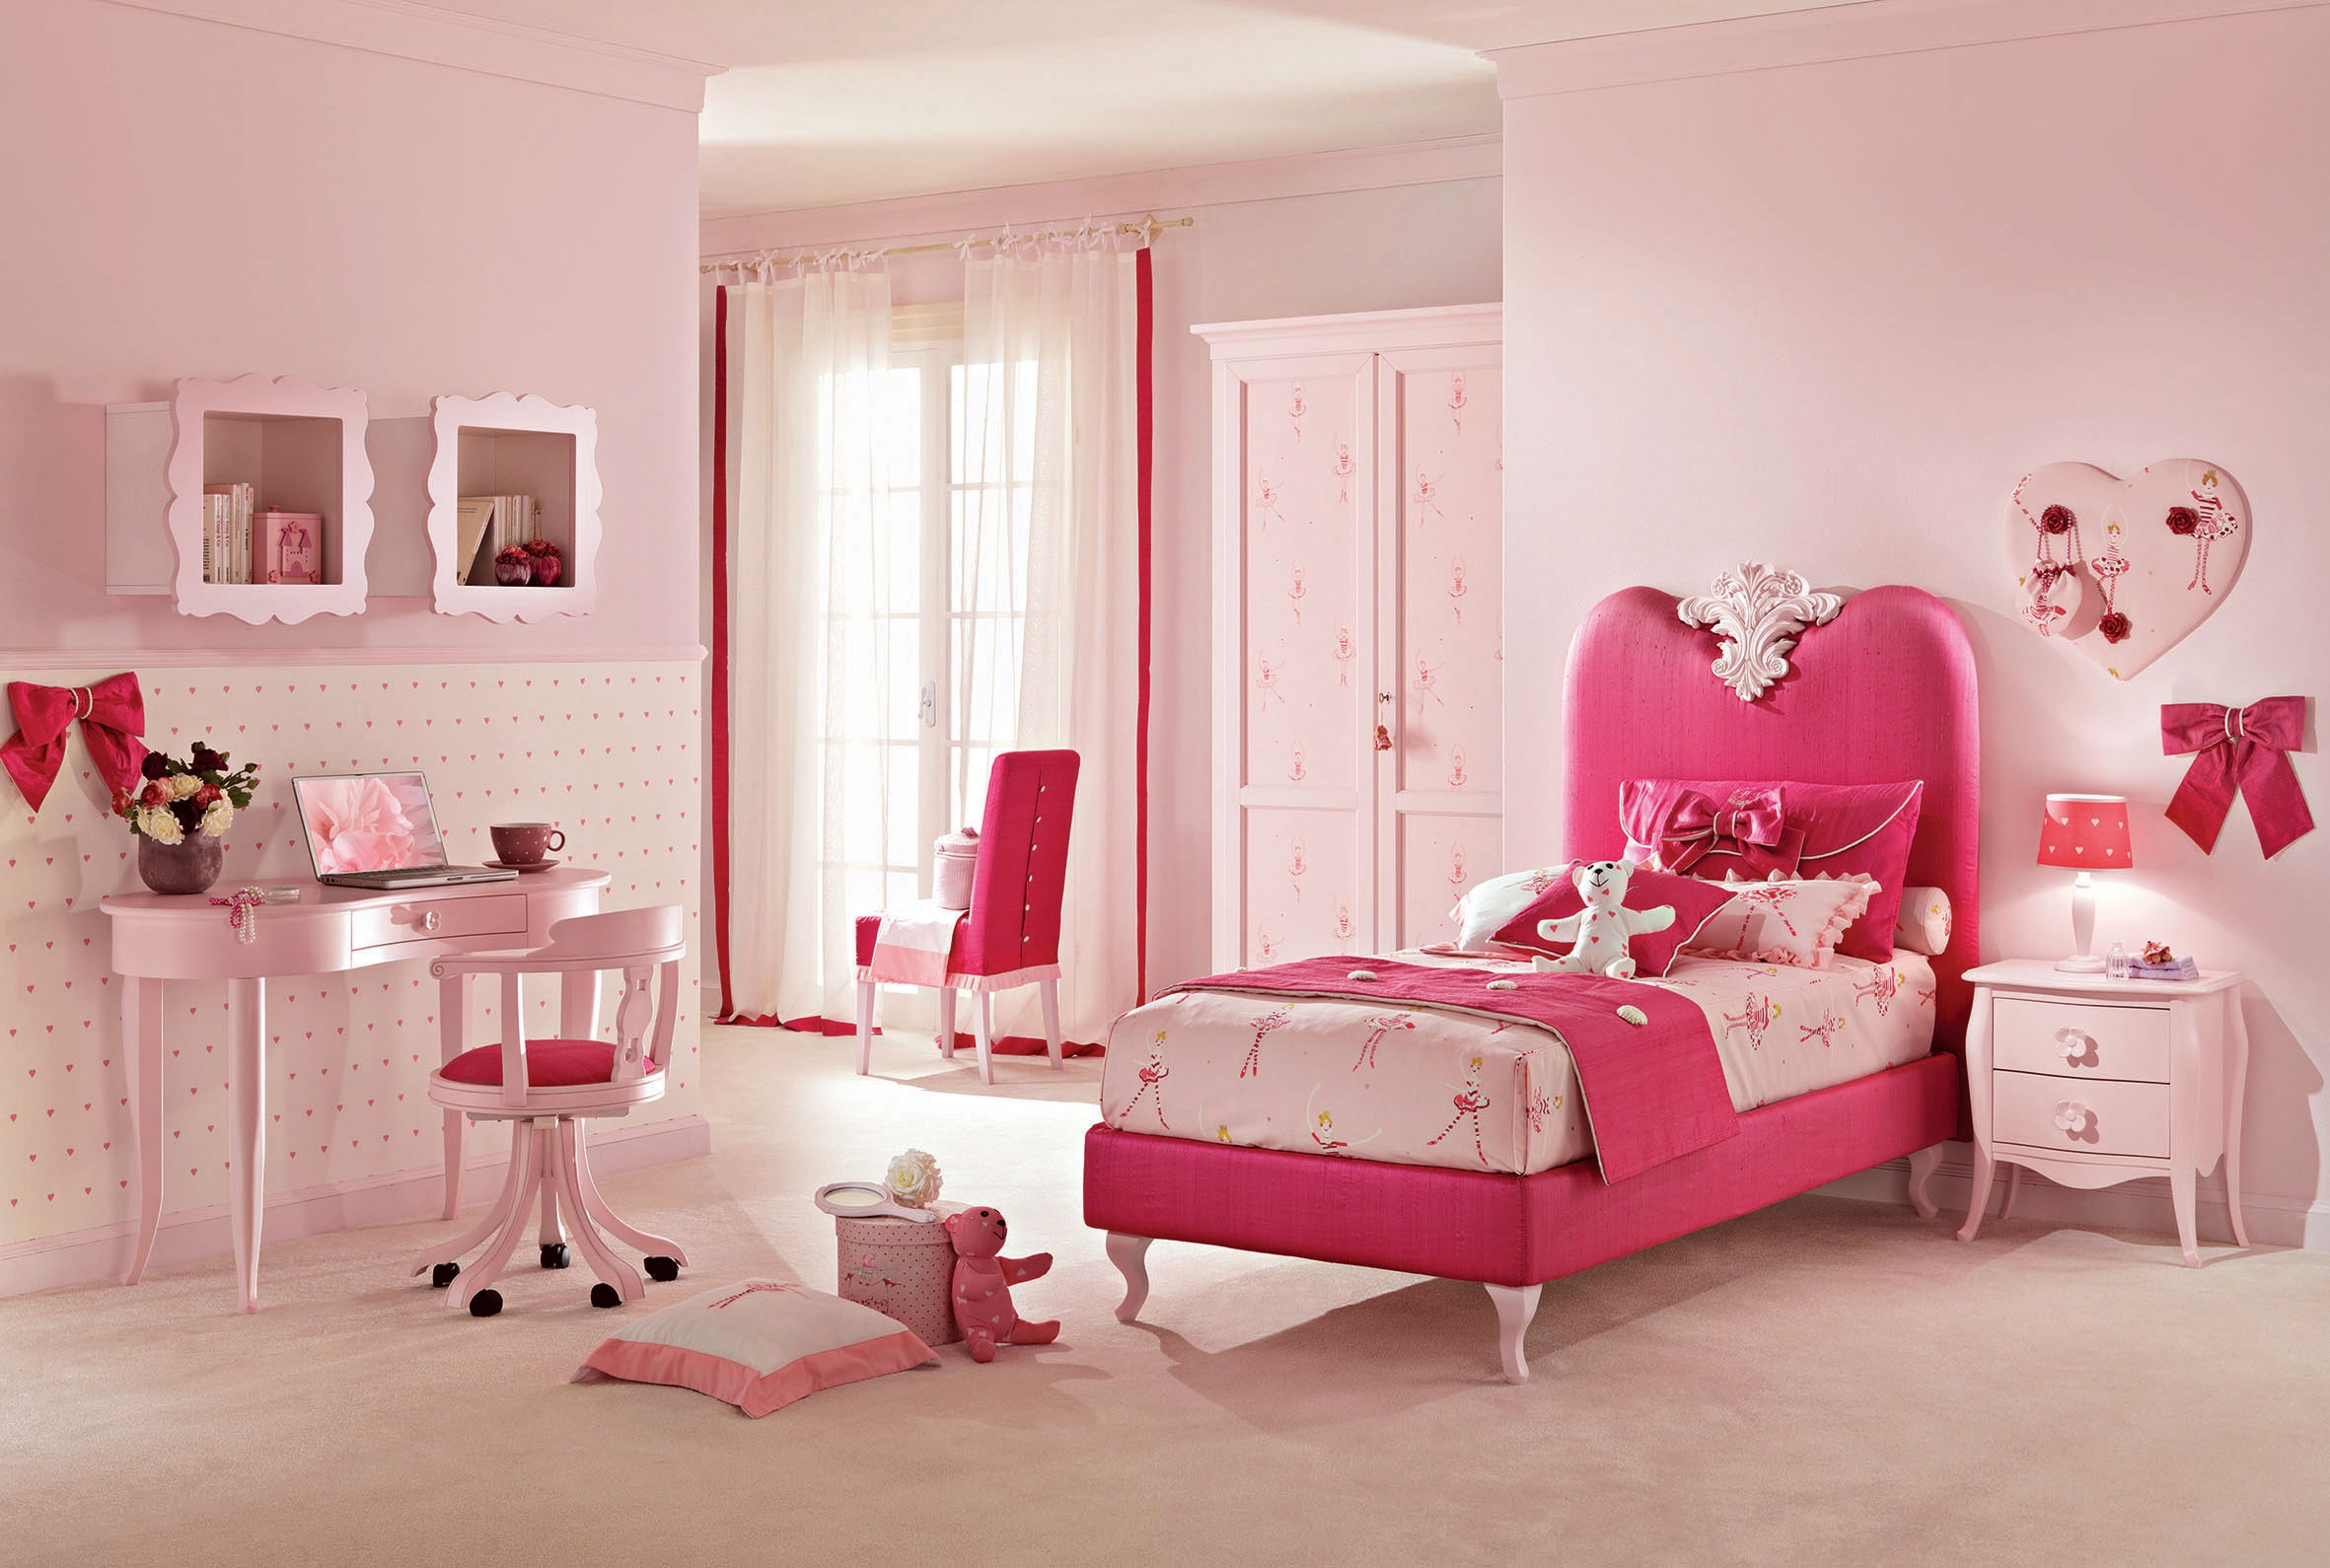 lit 1 personne couleur rose fushia rose pastel. Black Bedroom Furniture Sets. Home Design Ideas